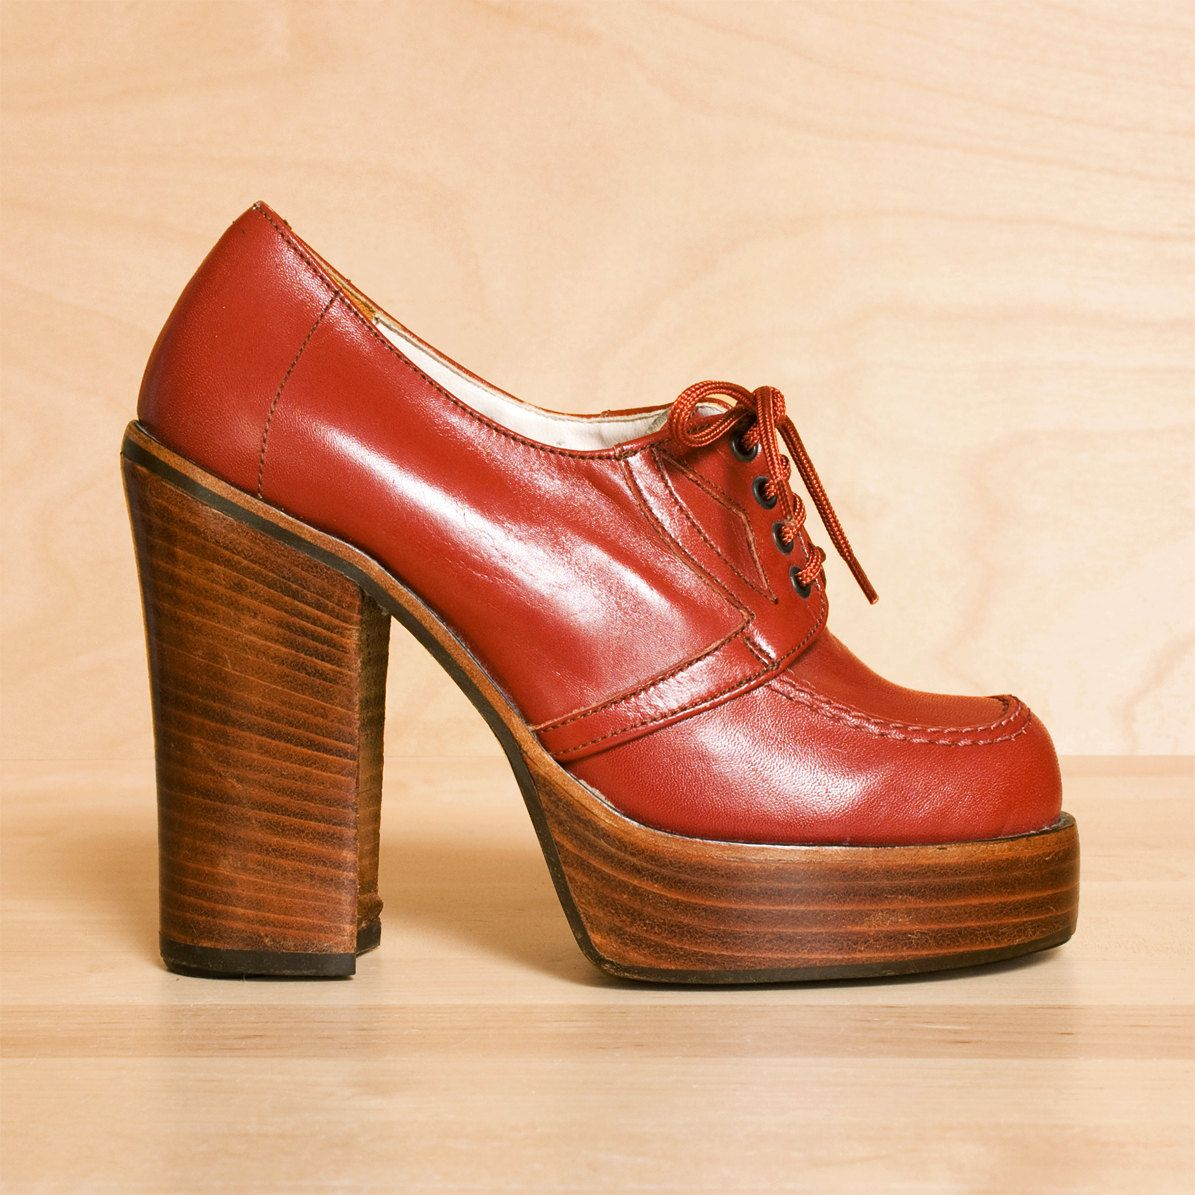 vintage 1970s platform shoes 5 5 burnt chunky